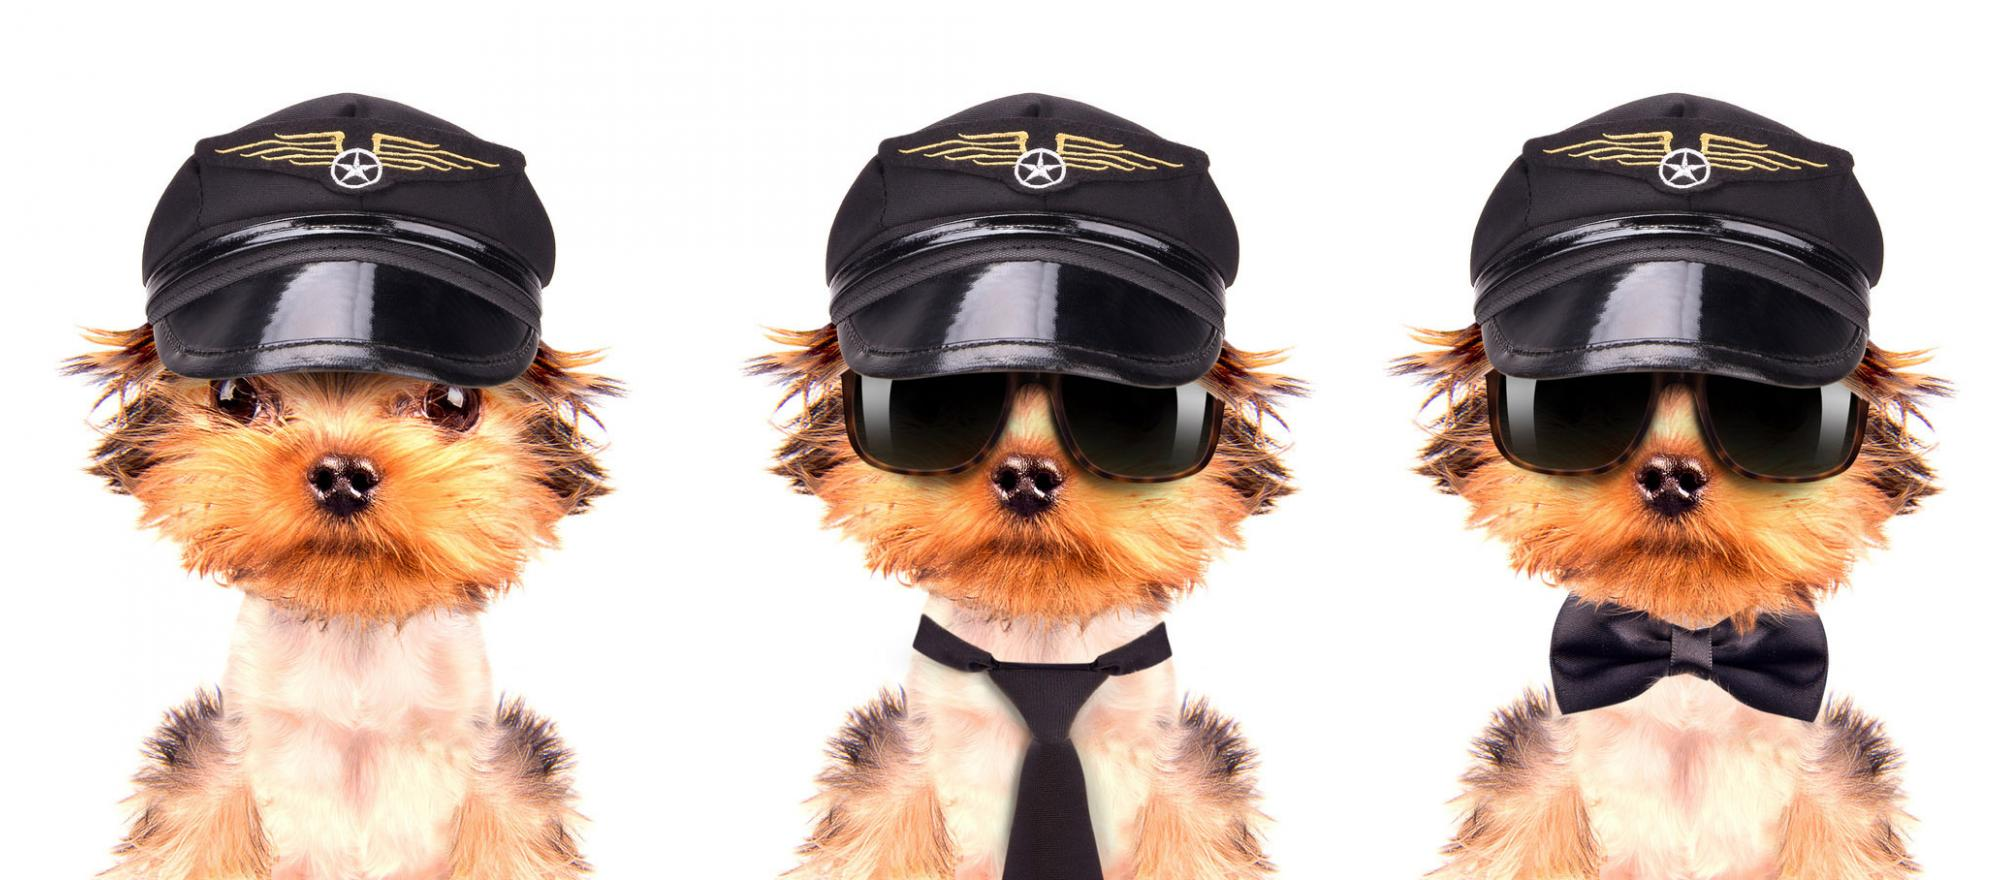 Three dogs with pilot caps.